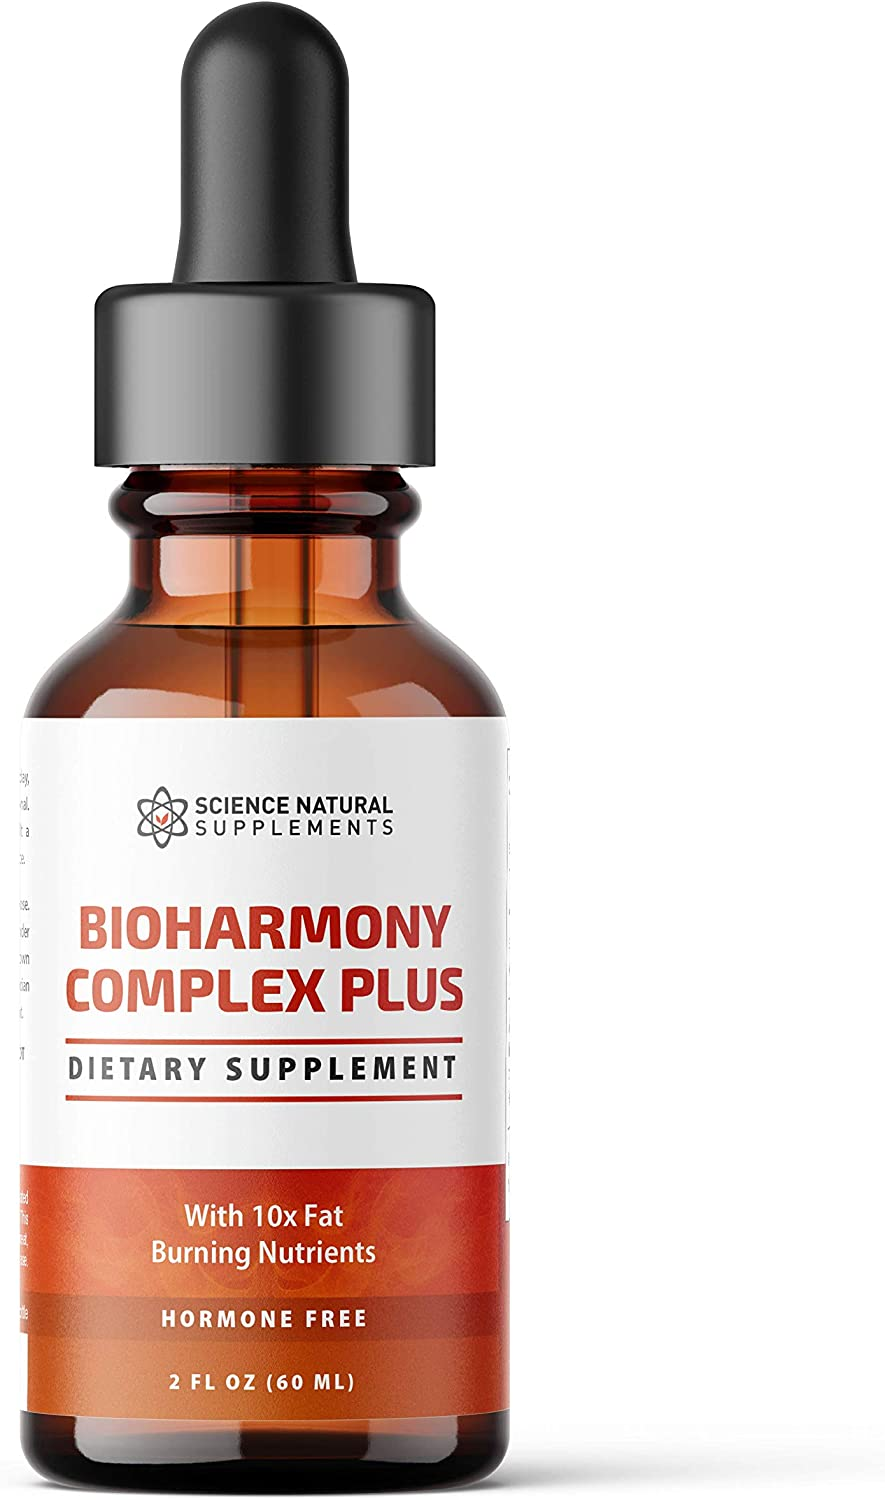 Science Natural Supplements: BioHarmony Advanced - Supplement for Weight Loss - 2 fl oz - Liquid Fat Burner with 10X Fat Burning Natural Plant Extracts - Fat Burners for Adults - Nutritional Drops